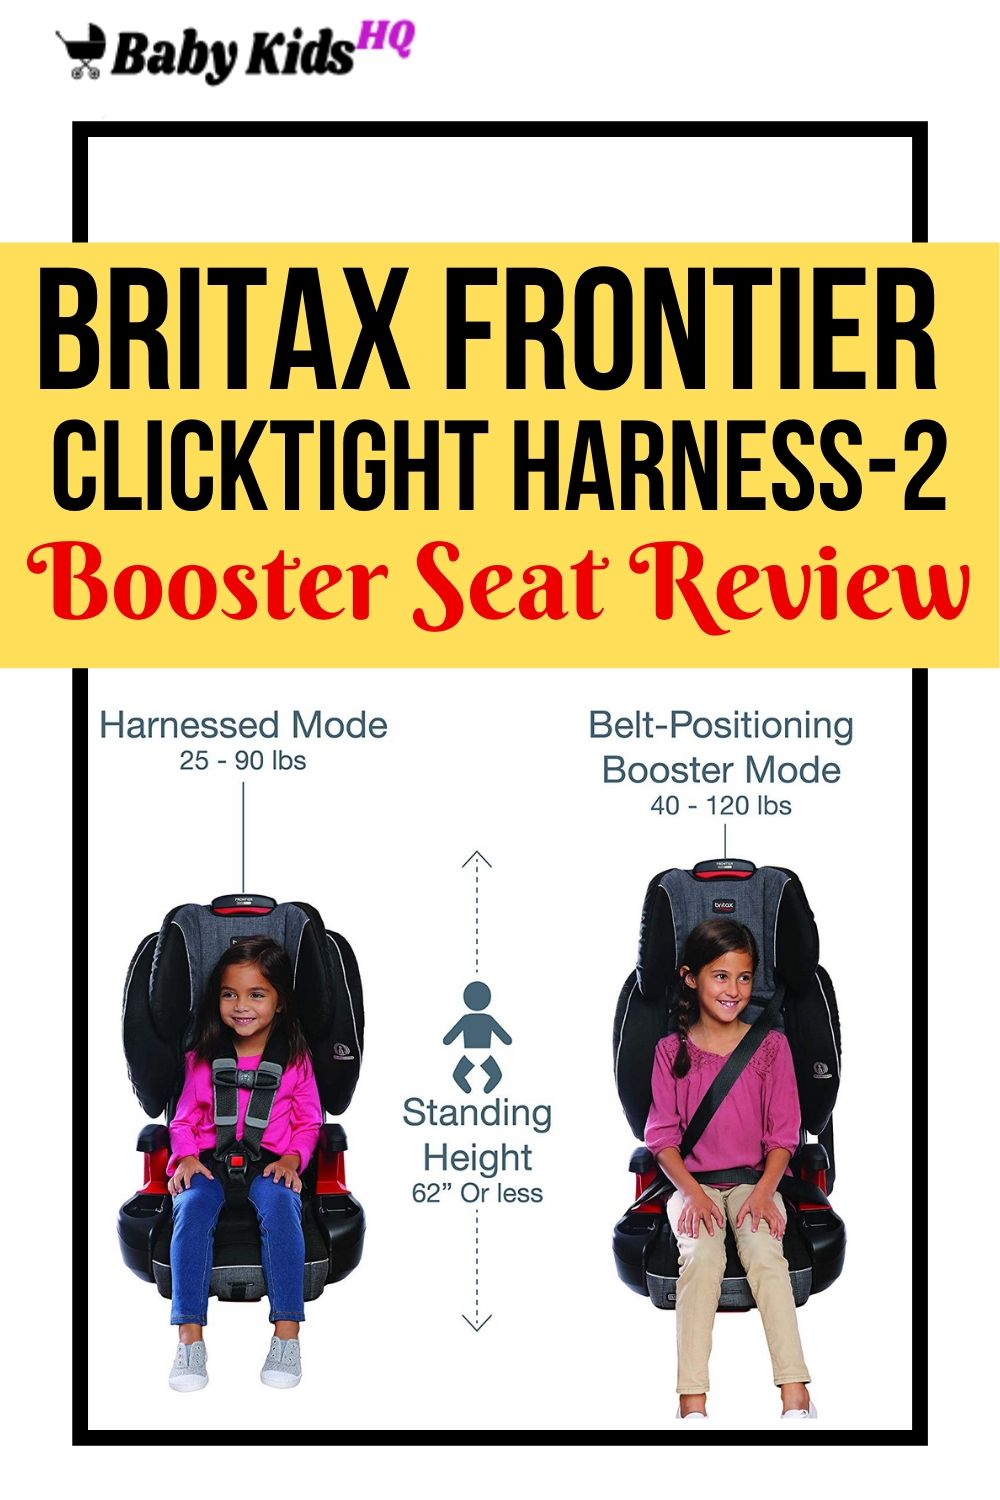 Britax Frontier ClickTight Harness-2 Booster Seat Review